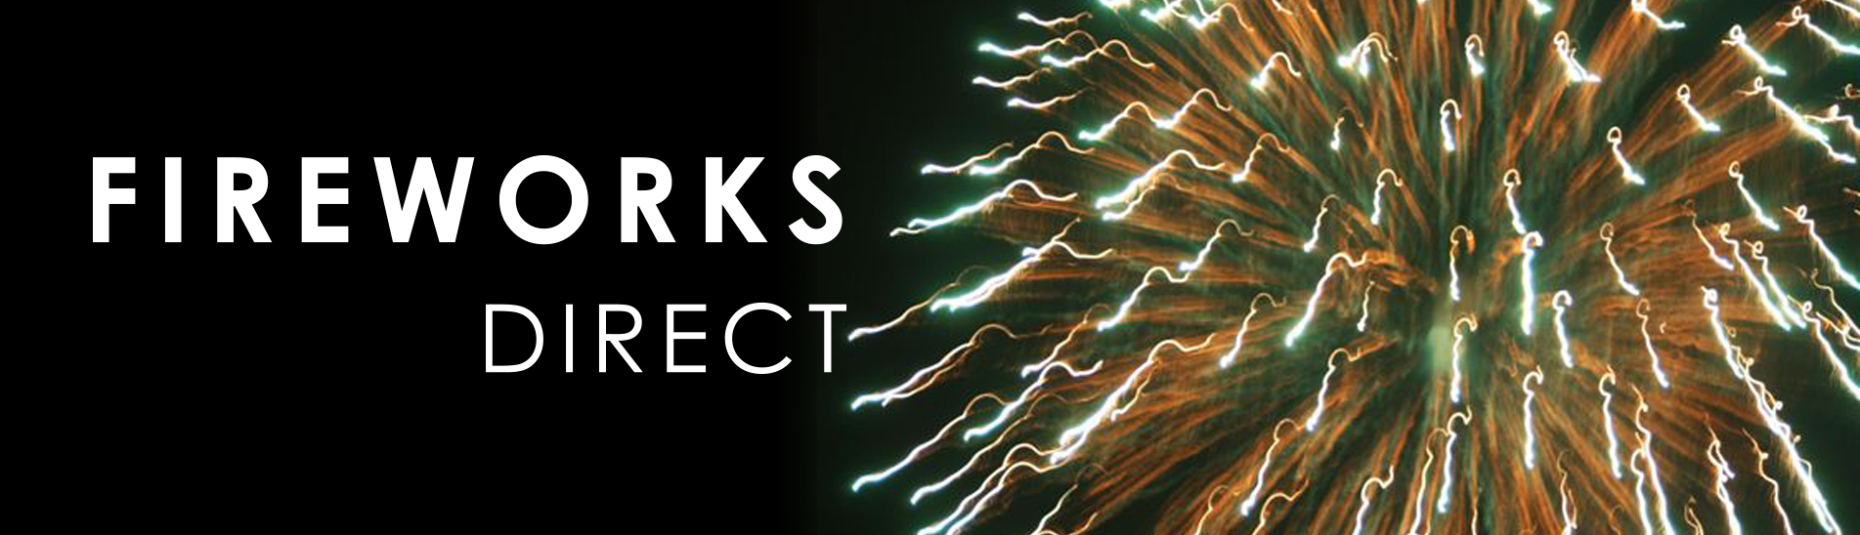 Fireworks Direct